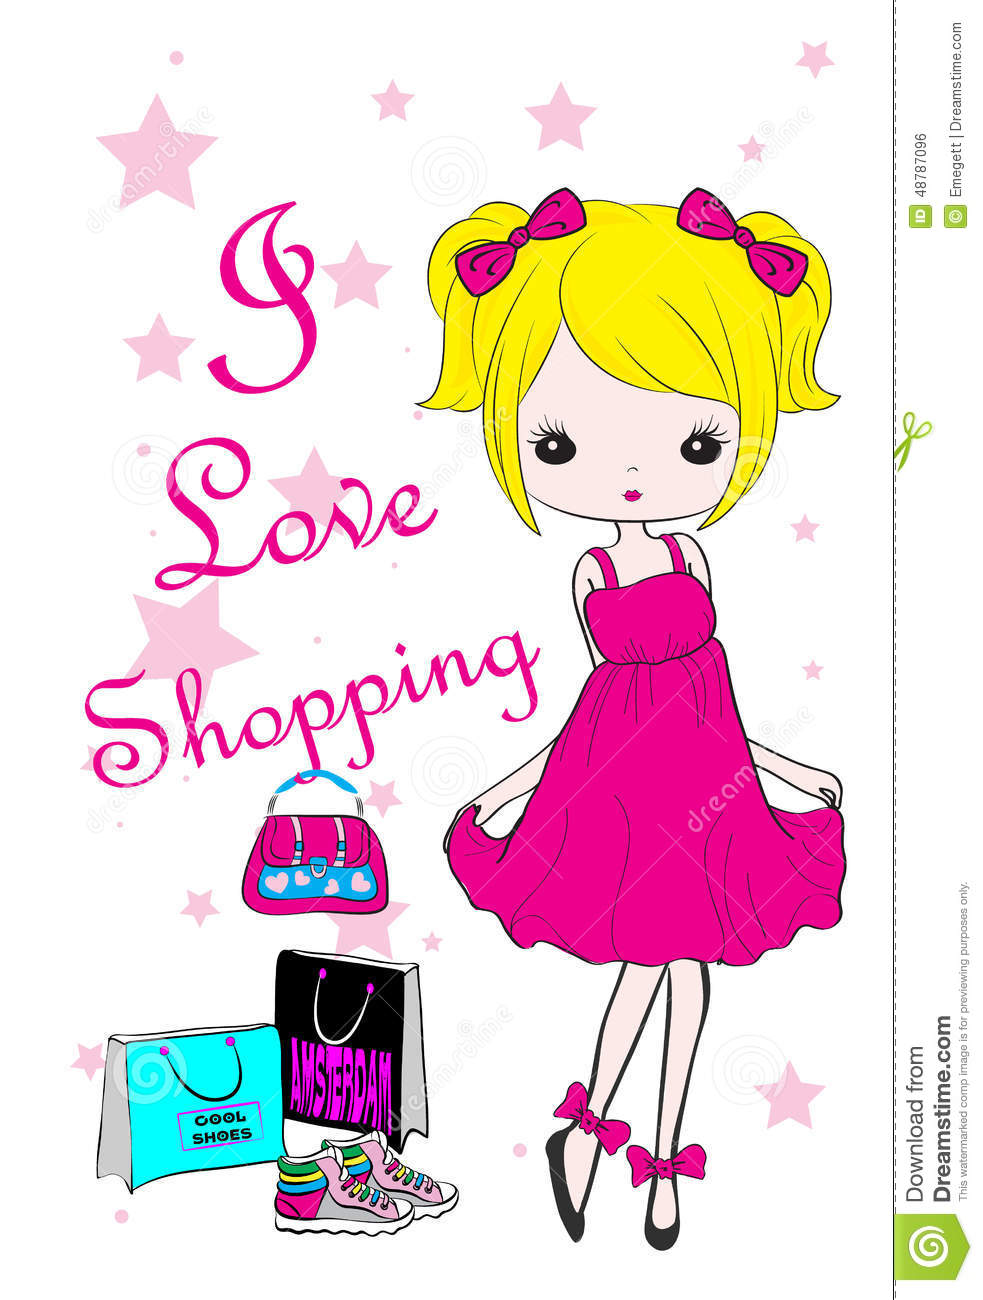 Design t shirt girl - Shopping Girl Fashion Kids T Shirt Graphic Vector Design